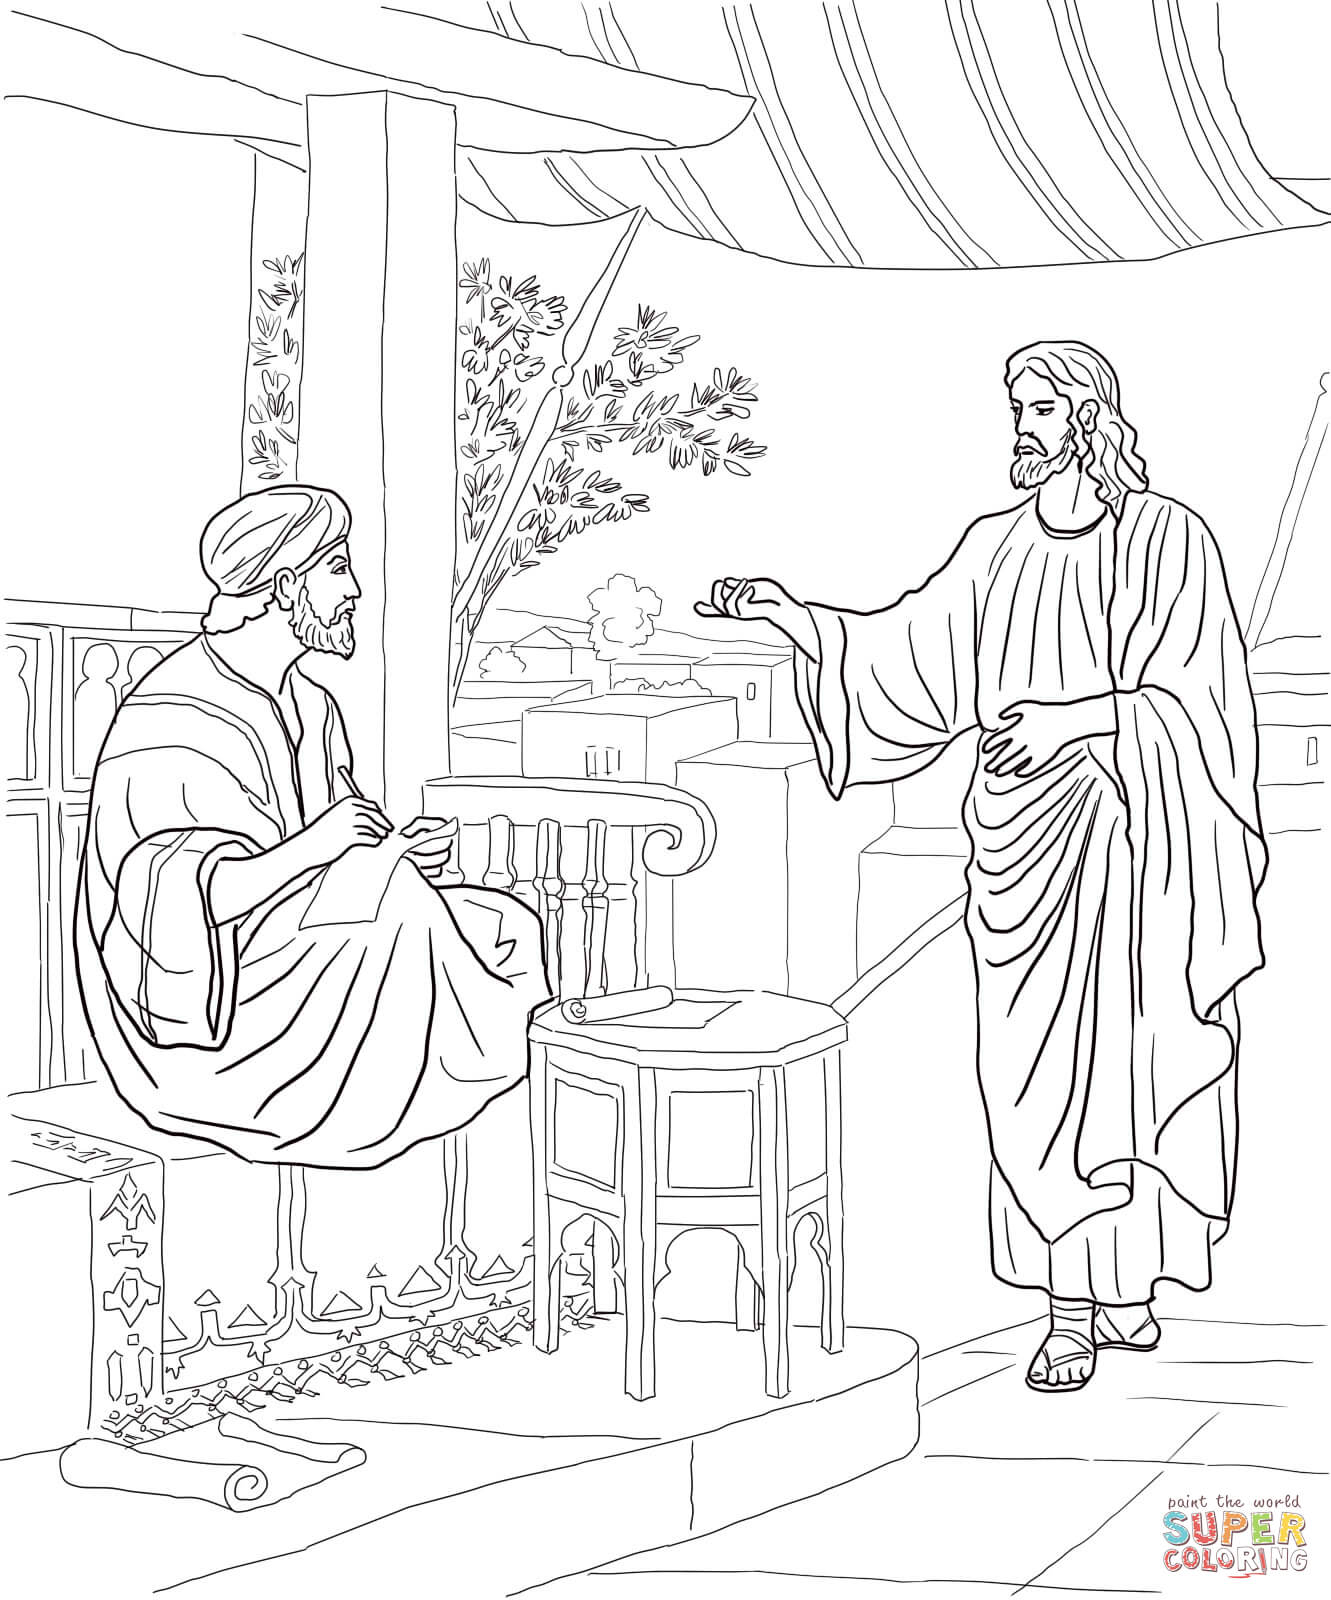 Doubting Thomas Coloring Pages  Gallery 1s - To print for your project